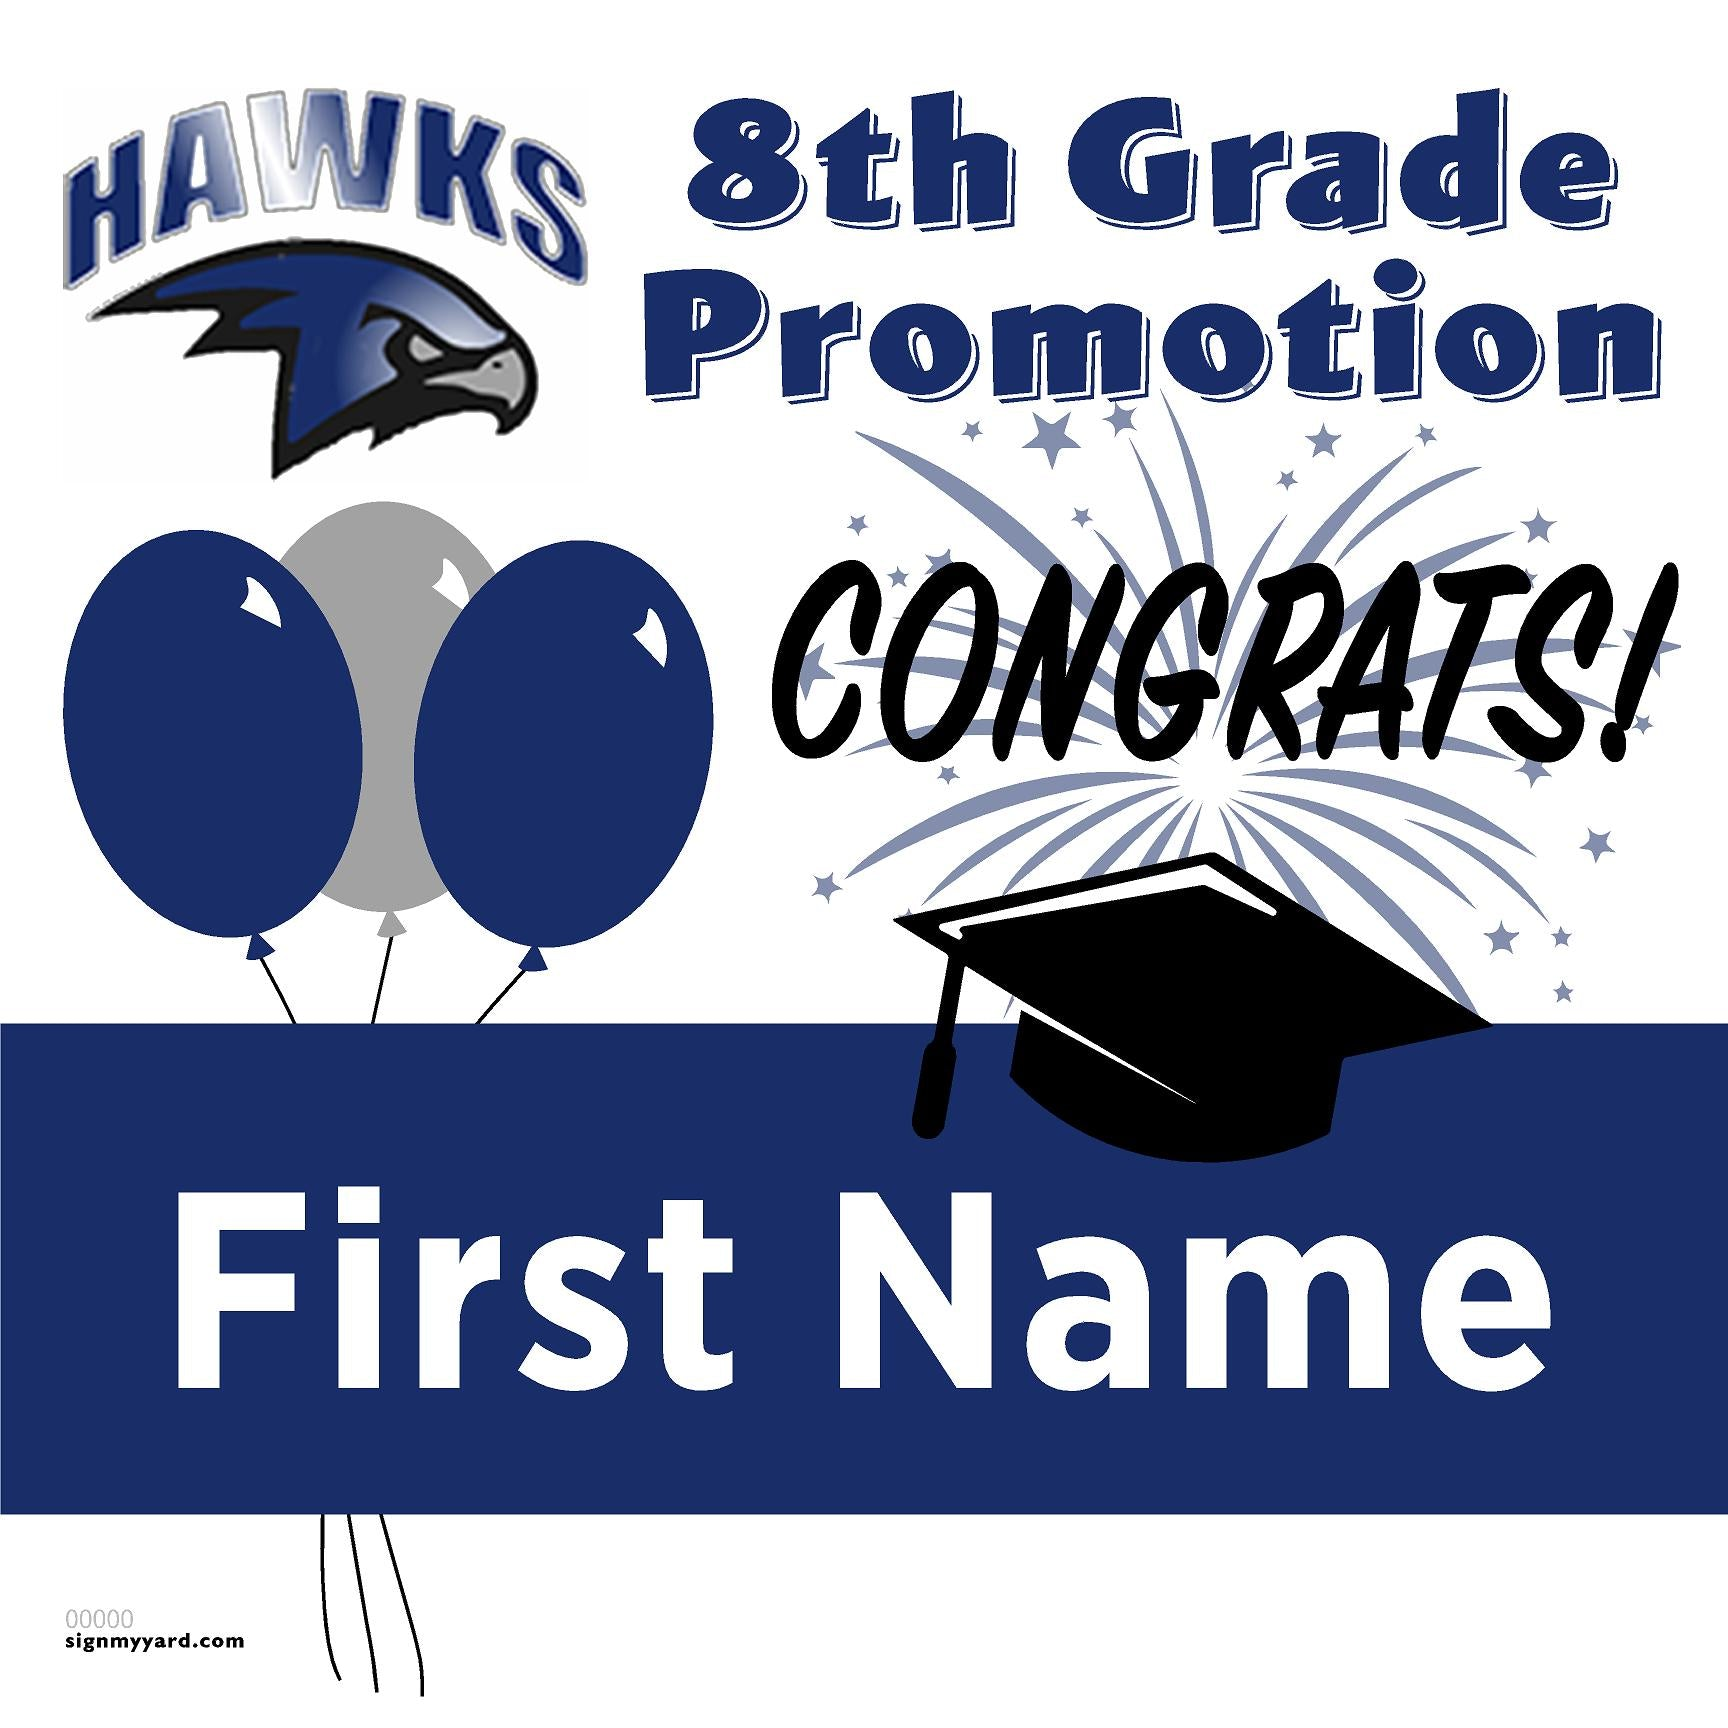 Marguerite Maze Middle School 8th Grade Promotion 24x24 Yard Sign (Option A)